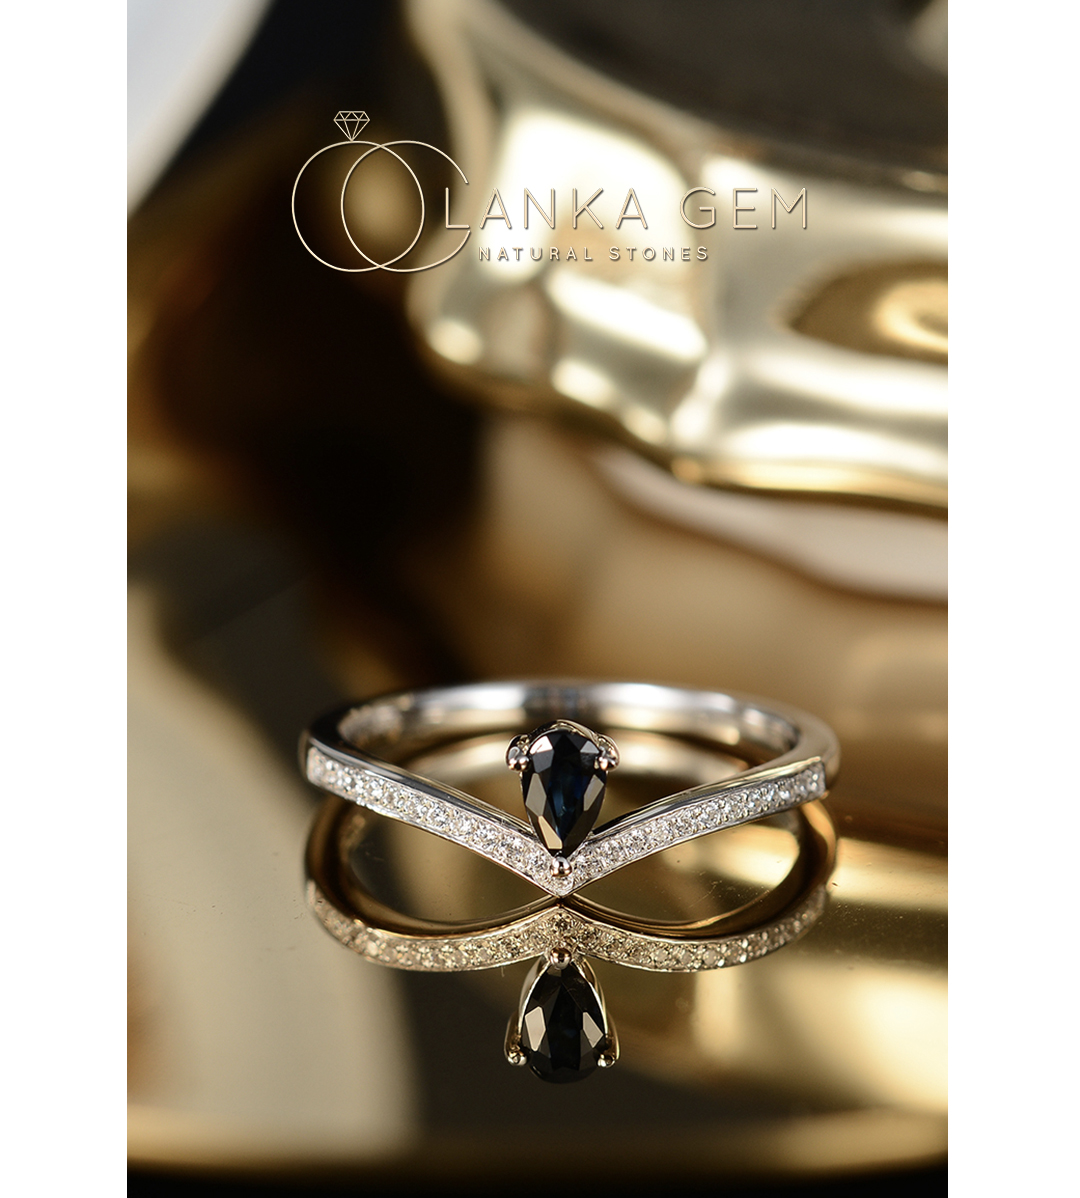 [legend of lanca] crown 925 silver plated 18K Gold Sri Lanka natural sapphire ring